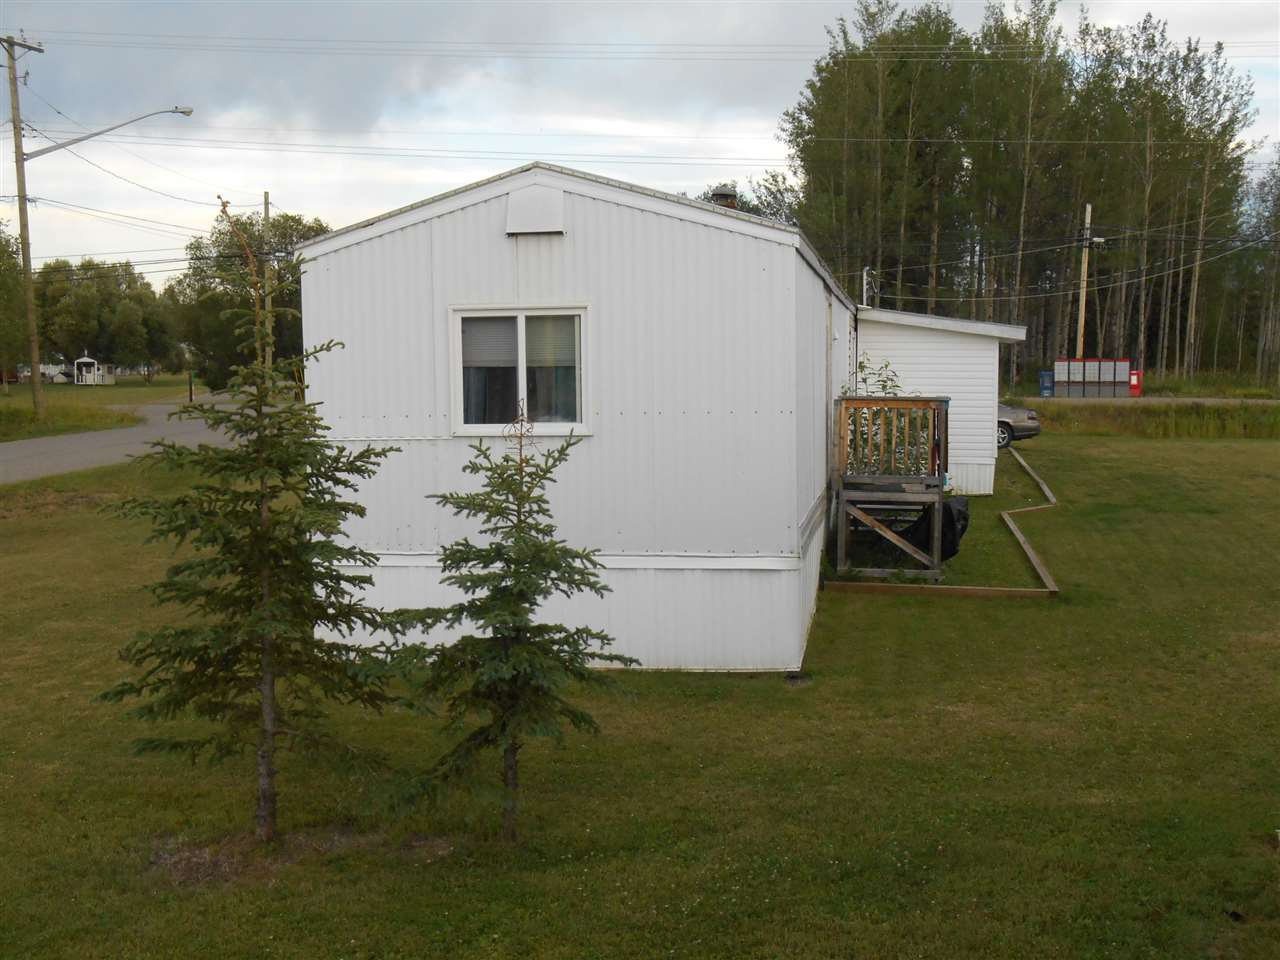 Photo 17: Photos: 2121 E MCLAREN Road in Prince George: North Blackburn Manufactured Home for sale (PG City South East (Zone 75))  : MLS®# R2104861